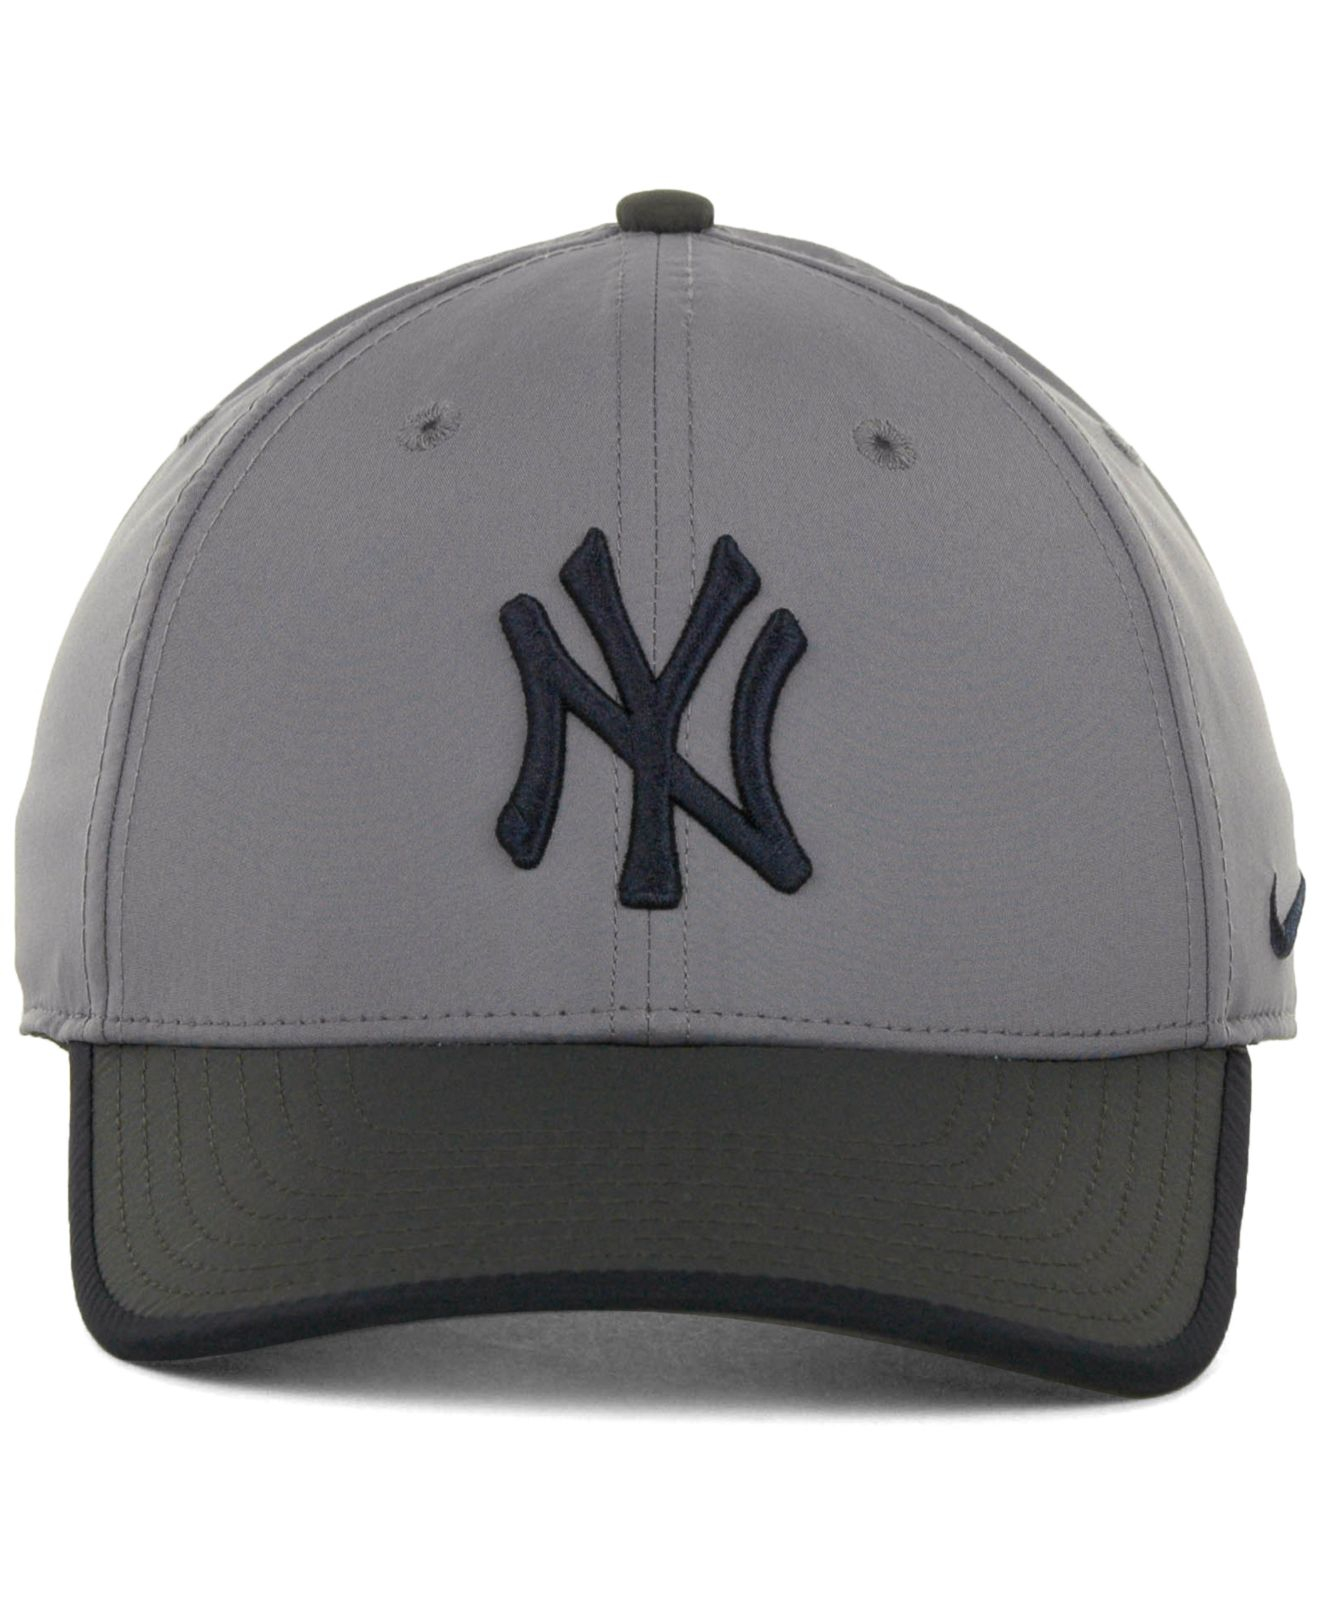 Lyst - Nike New York Yankees L91 Featherlight Adjustable Cap in Gray ... 8739a5a26bcf